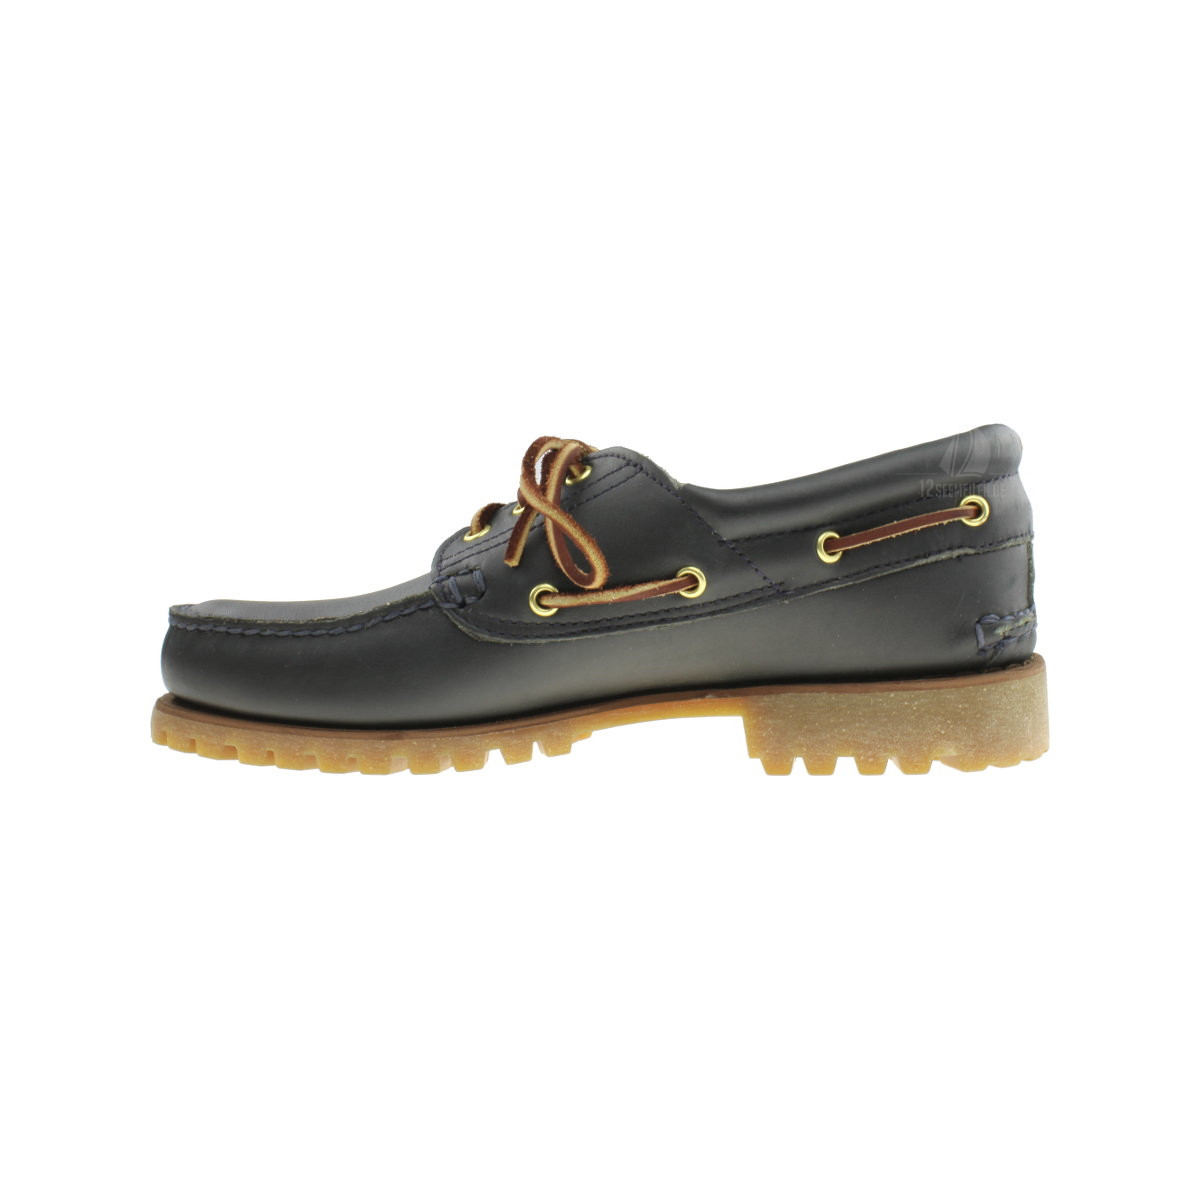 Timberland Classic Lug Bootsschuh Herren navy Limited Edition